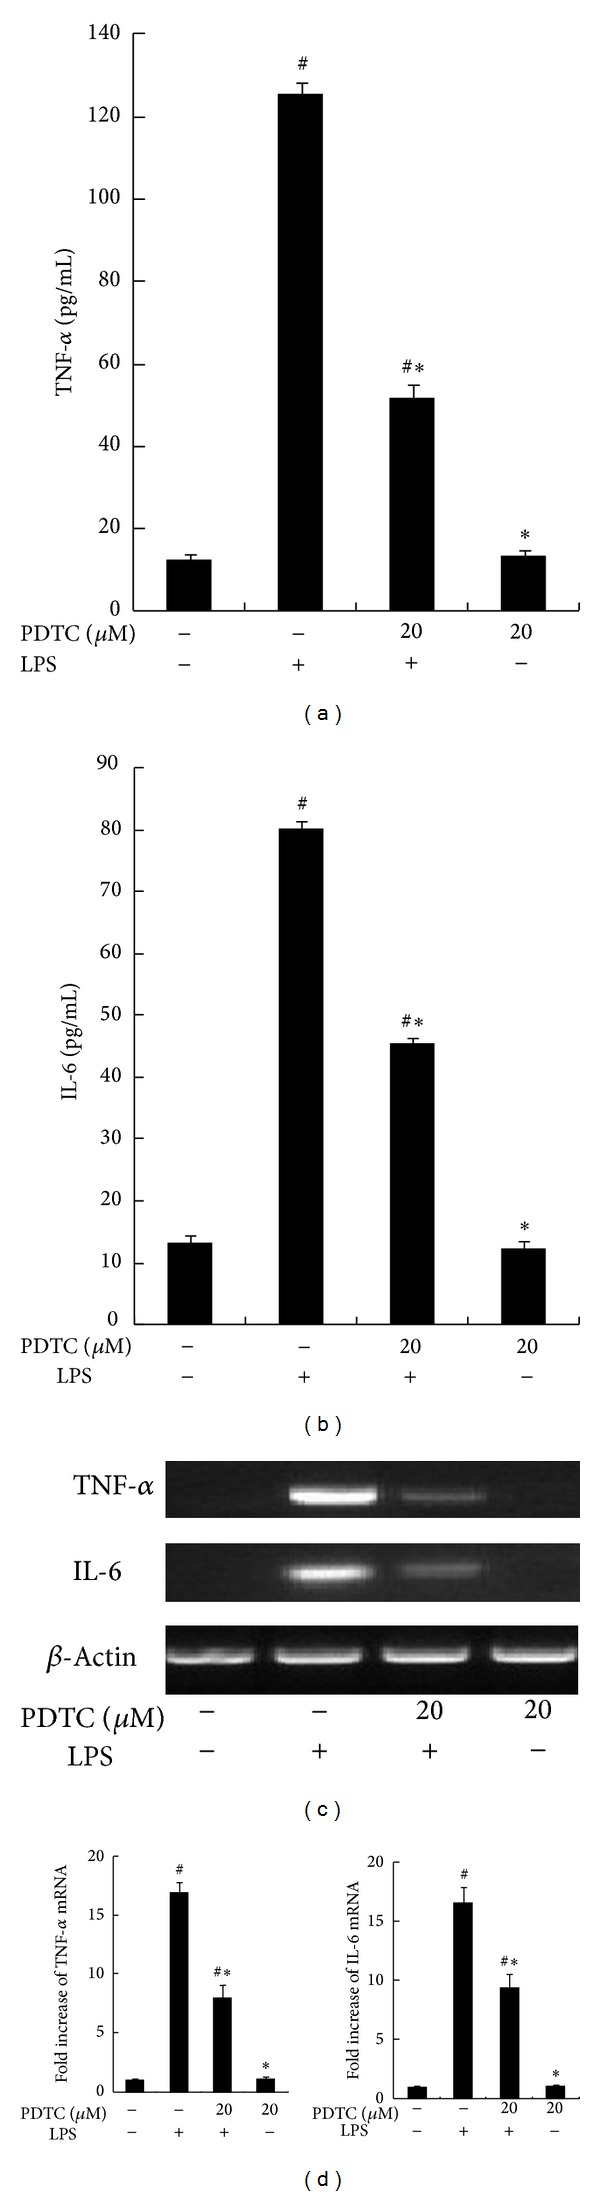 Effect of NF- κ B Inhibitor on LPS-induced TNF- α and IL-6 expression. RAW264.7 macrophages were pretreated with dimethyl sulfoxide (DMSO) or 20 μ M pyrrolidine dithiocarbamate (PDTC) for 1 h and stimulated with 100 ng/mL LPS for 8 h. The concentrations of TNF- α and IL-6 in culture supernatants were measured by ELISA. (c) RAW264.7 macrophages were pretreated with dimethyl sulfoxide (DMSO) or 20 μ M PDTC for 1 h and then stimulated with LPS for 2 h. Steady state mRNA levels of TNF- α and IL-6 were examined by RT-PCR. (d) The levels of TNF- α and IL-6 mRNA were quantified by measuring band intensities and shown as fold increase relative to β -actin mRNA levels. Each value represents the means ± SD for n = 4. # and ∗ indicate statistically significant differences ( P